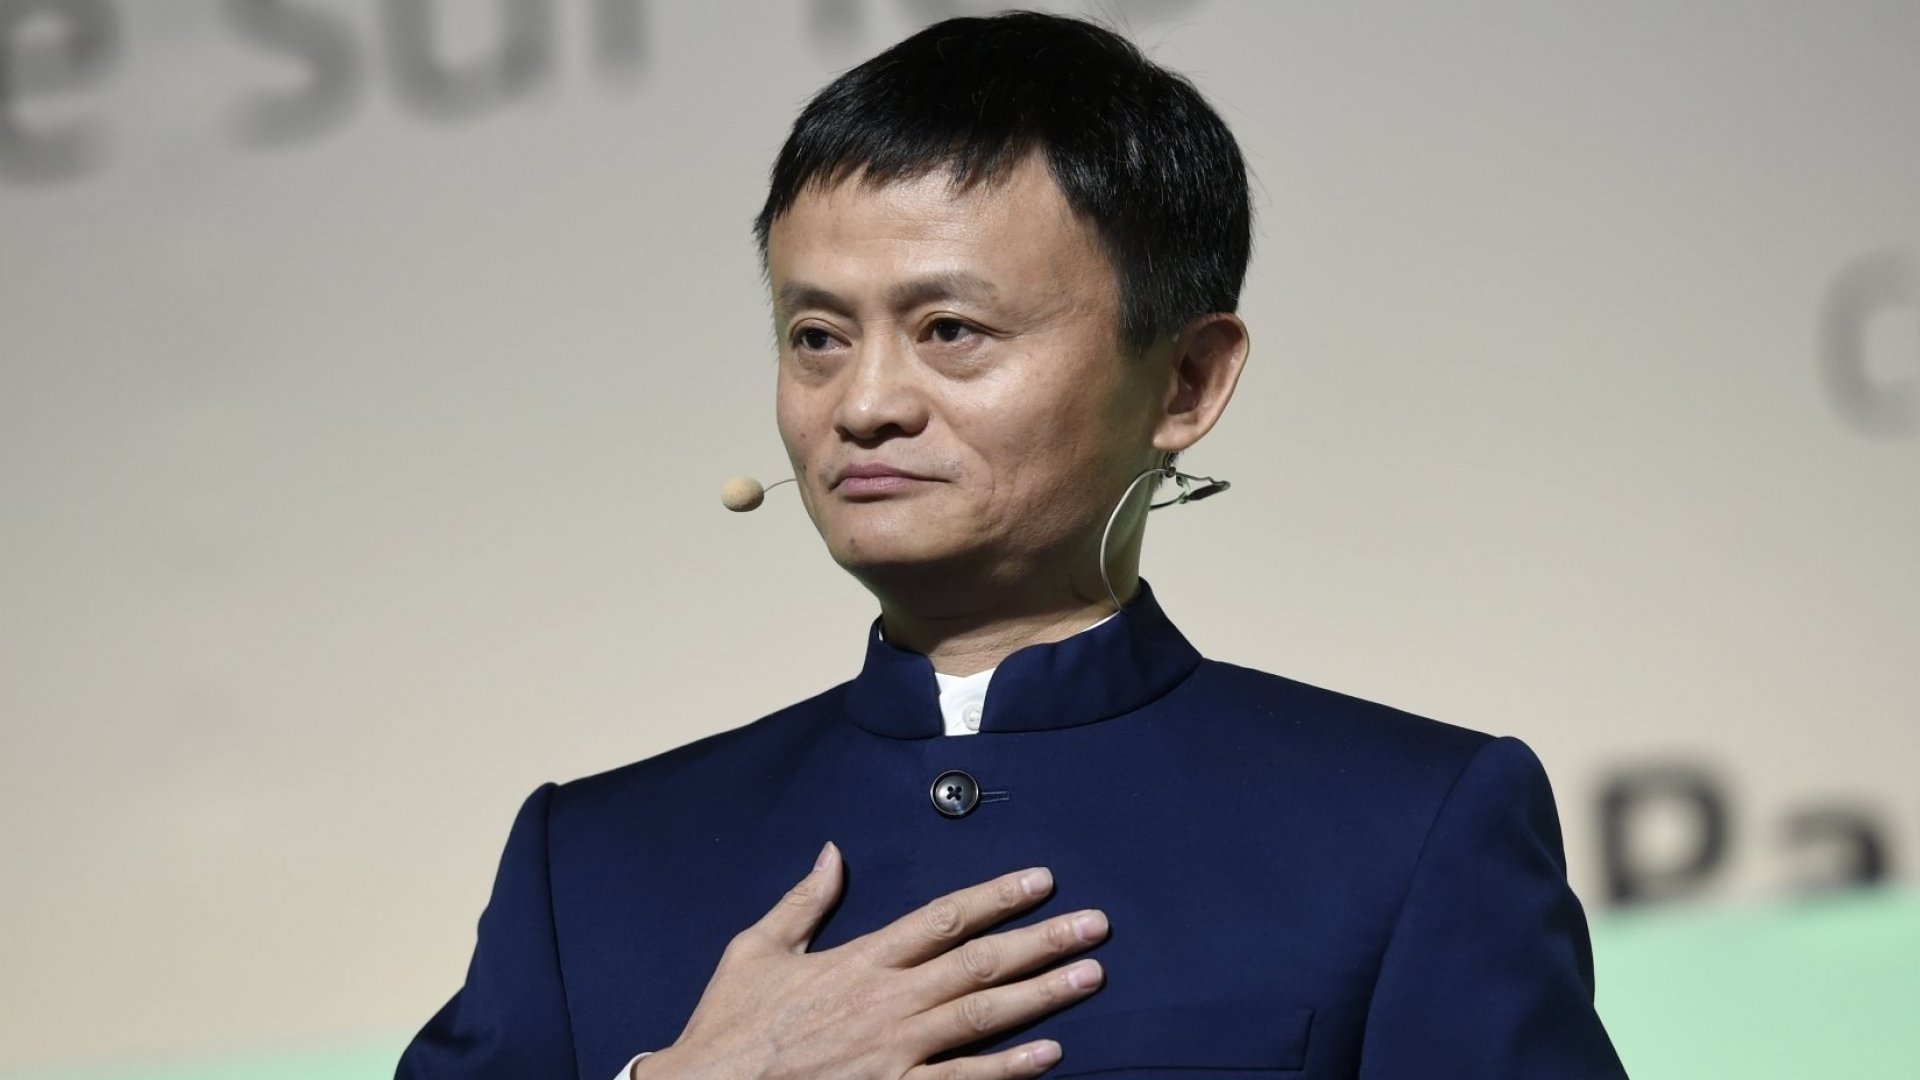 Chief executive officer of the Alibaba Group Jack Ma (Ma Yun)